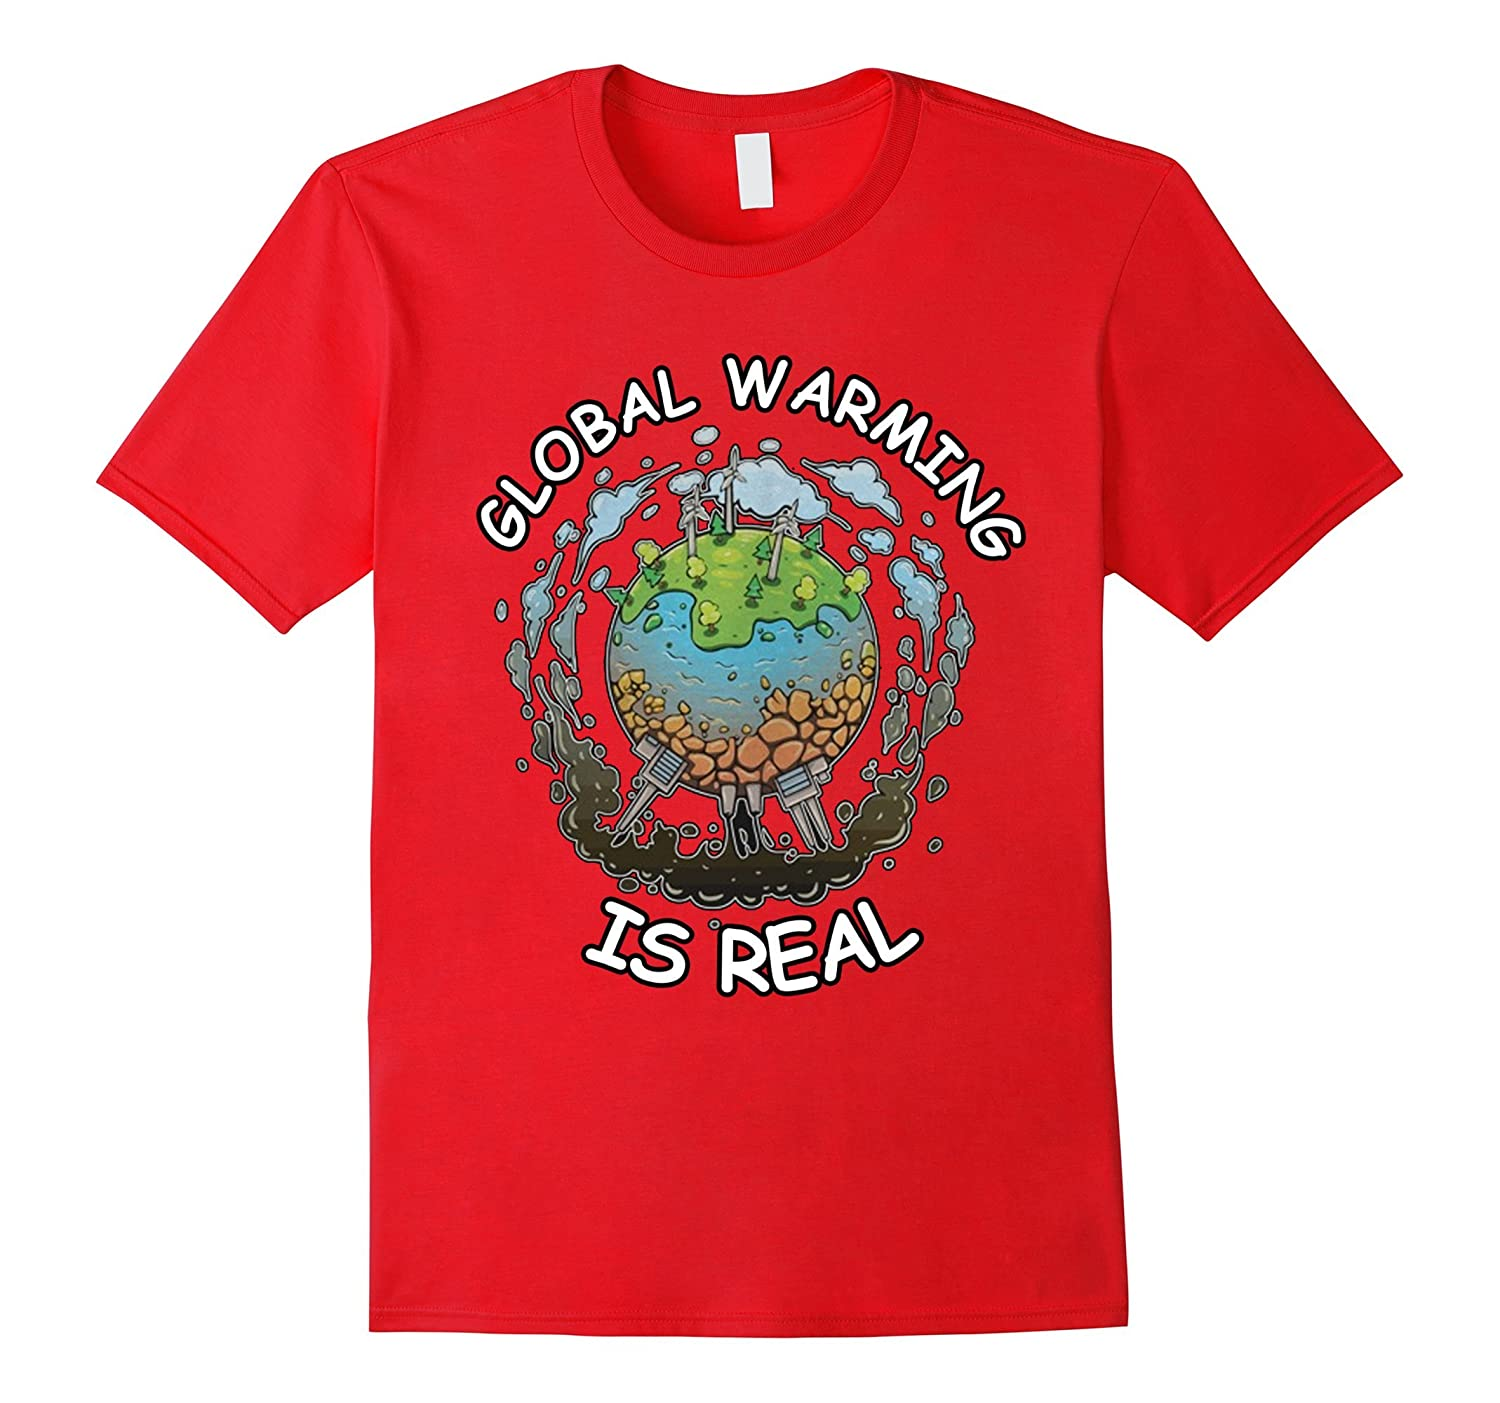 Global Warming Is REAL Peoples Climate March T-shirt-TD